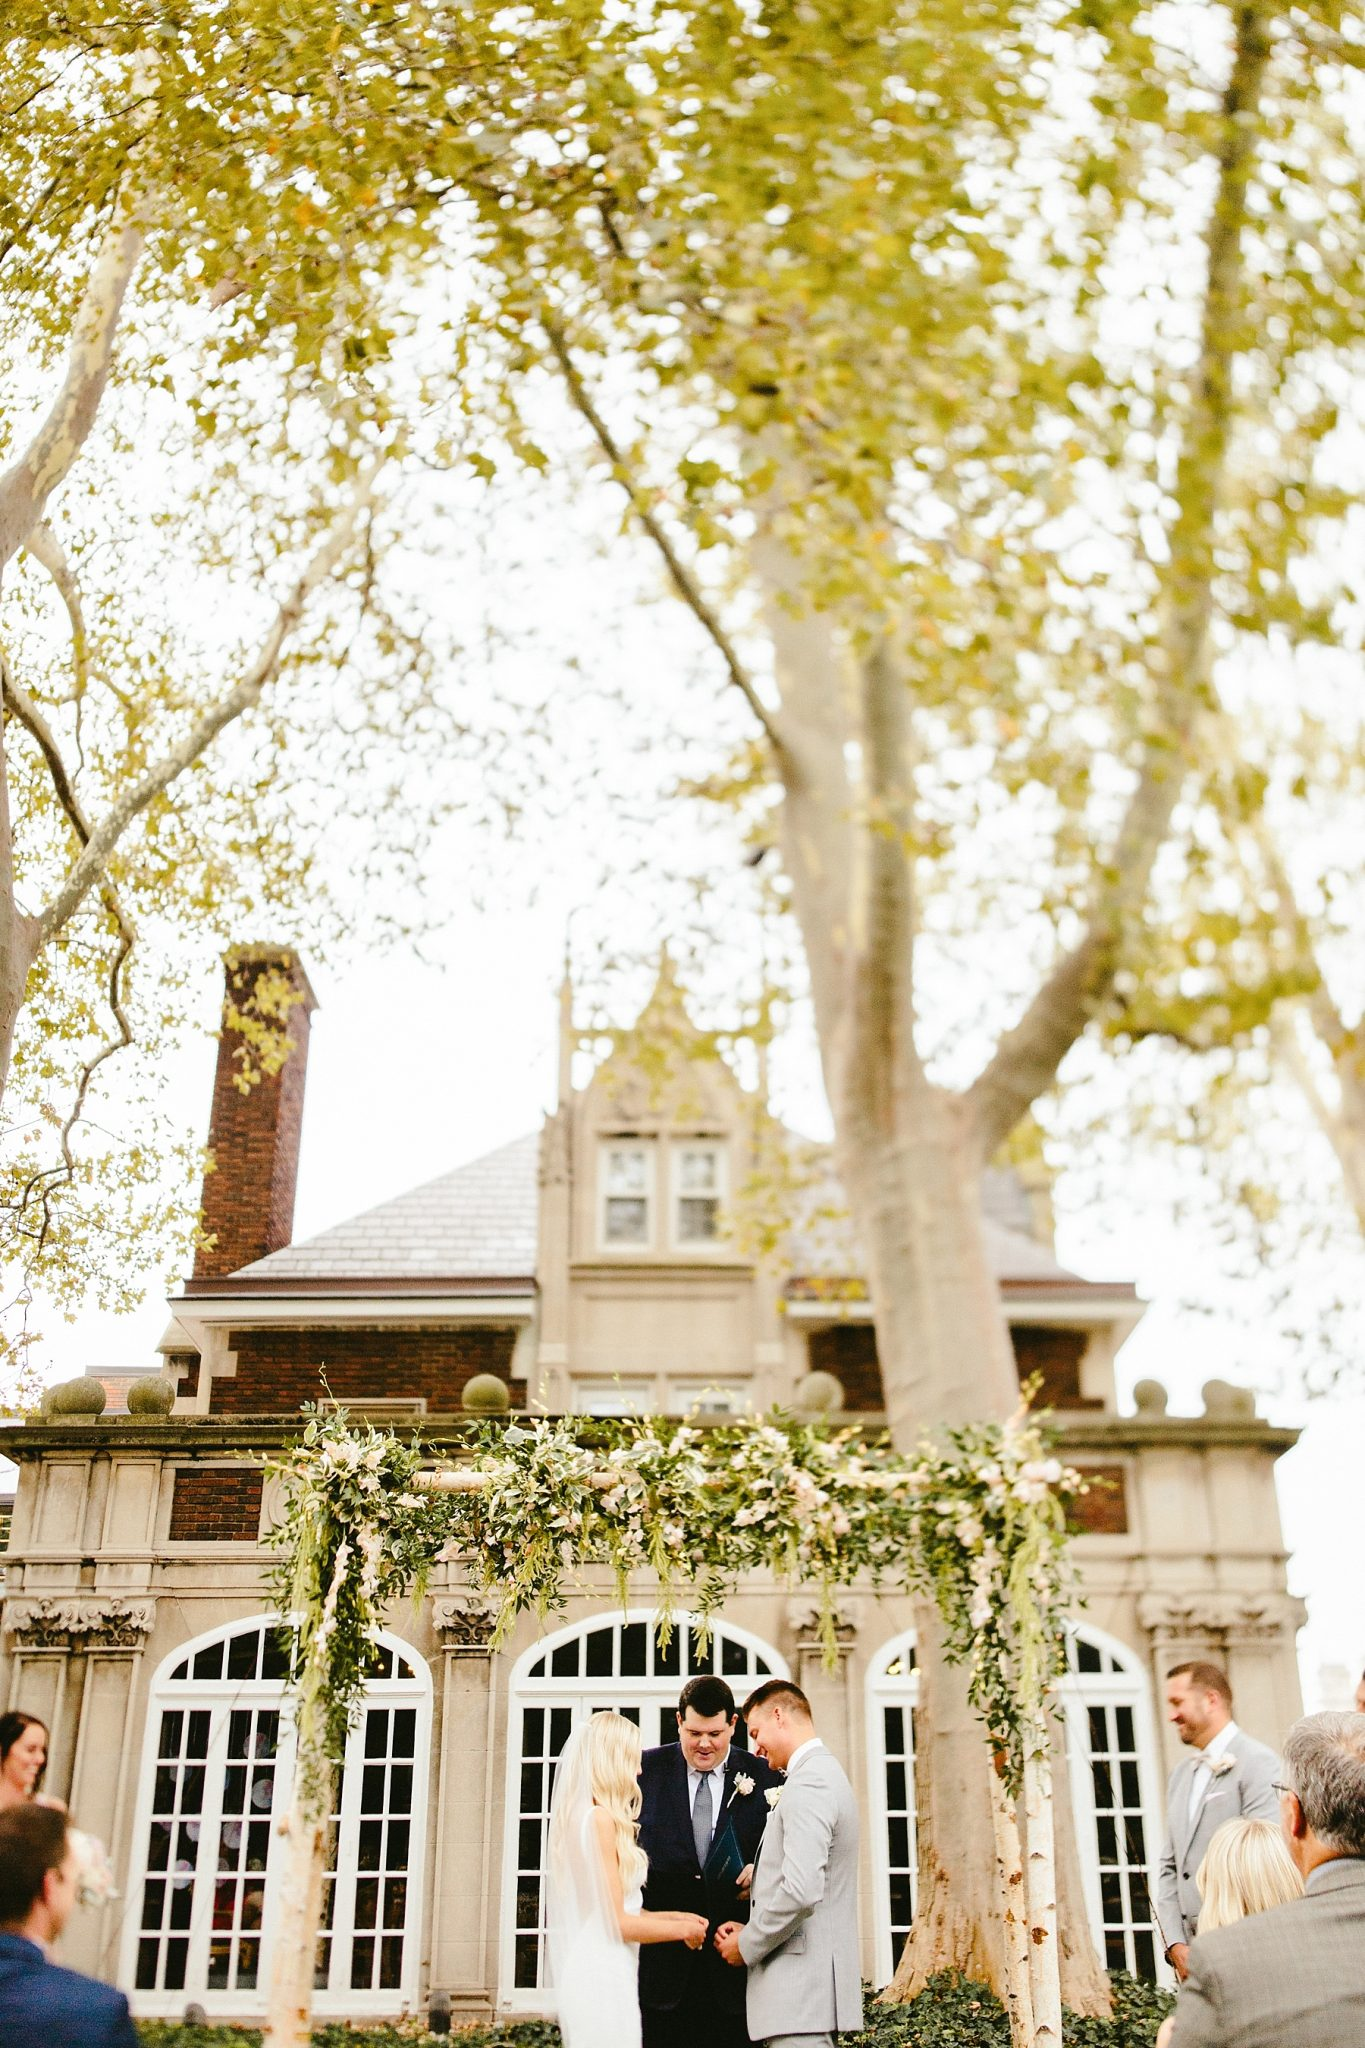 wedding terrace, wedding greenery ideas, wedding terrace inspiration, gatsby inspired wedding, pastel wedding theme, watercolor wedding theme, romantic outdoor ceremony,Brooklyn wedding photography, Brooklyn wedding, Philadelphia wedding photographer, Philadelphia wedding, Brooklyn new york photographer, unique wedding inspiration, fun wedding photos, romantic wedding, destination wedding photographer